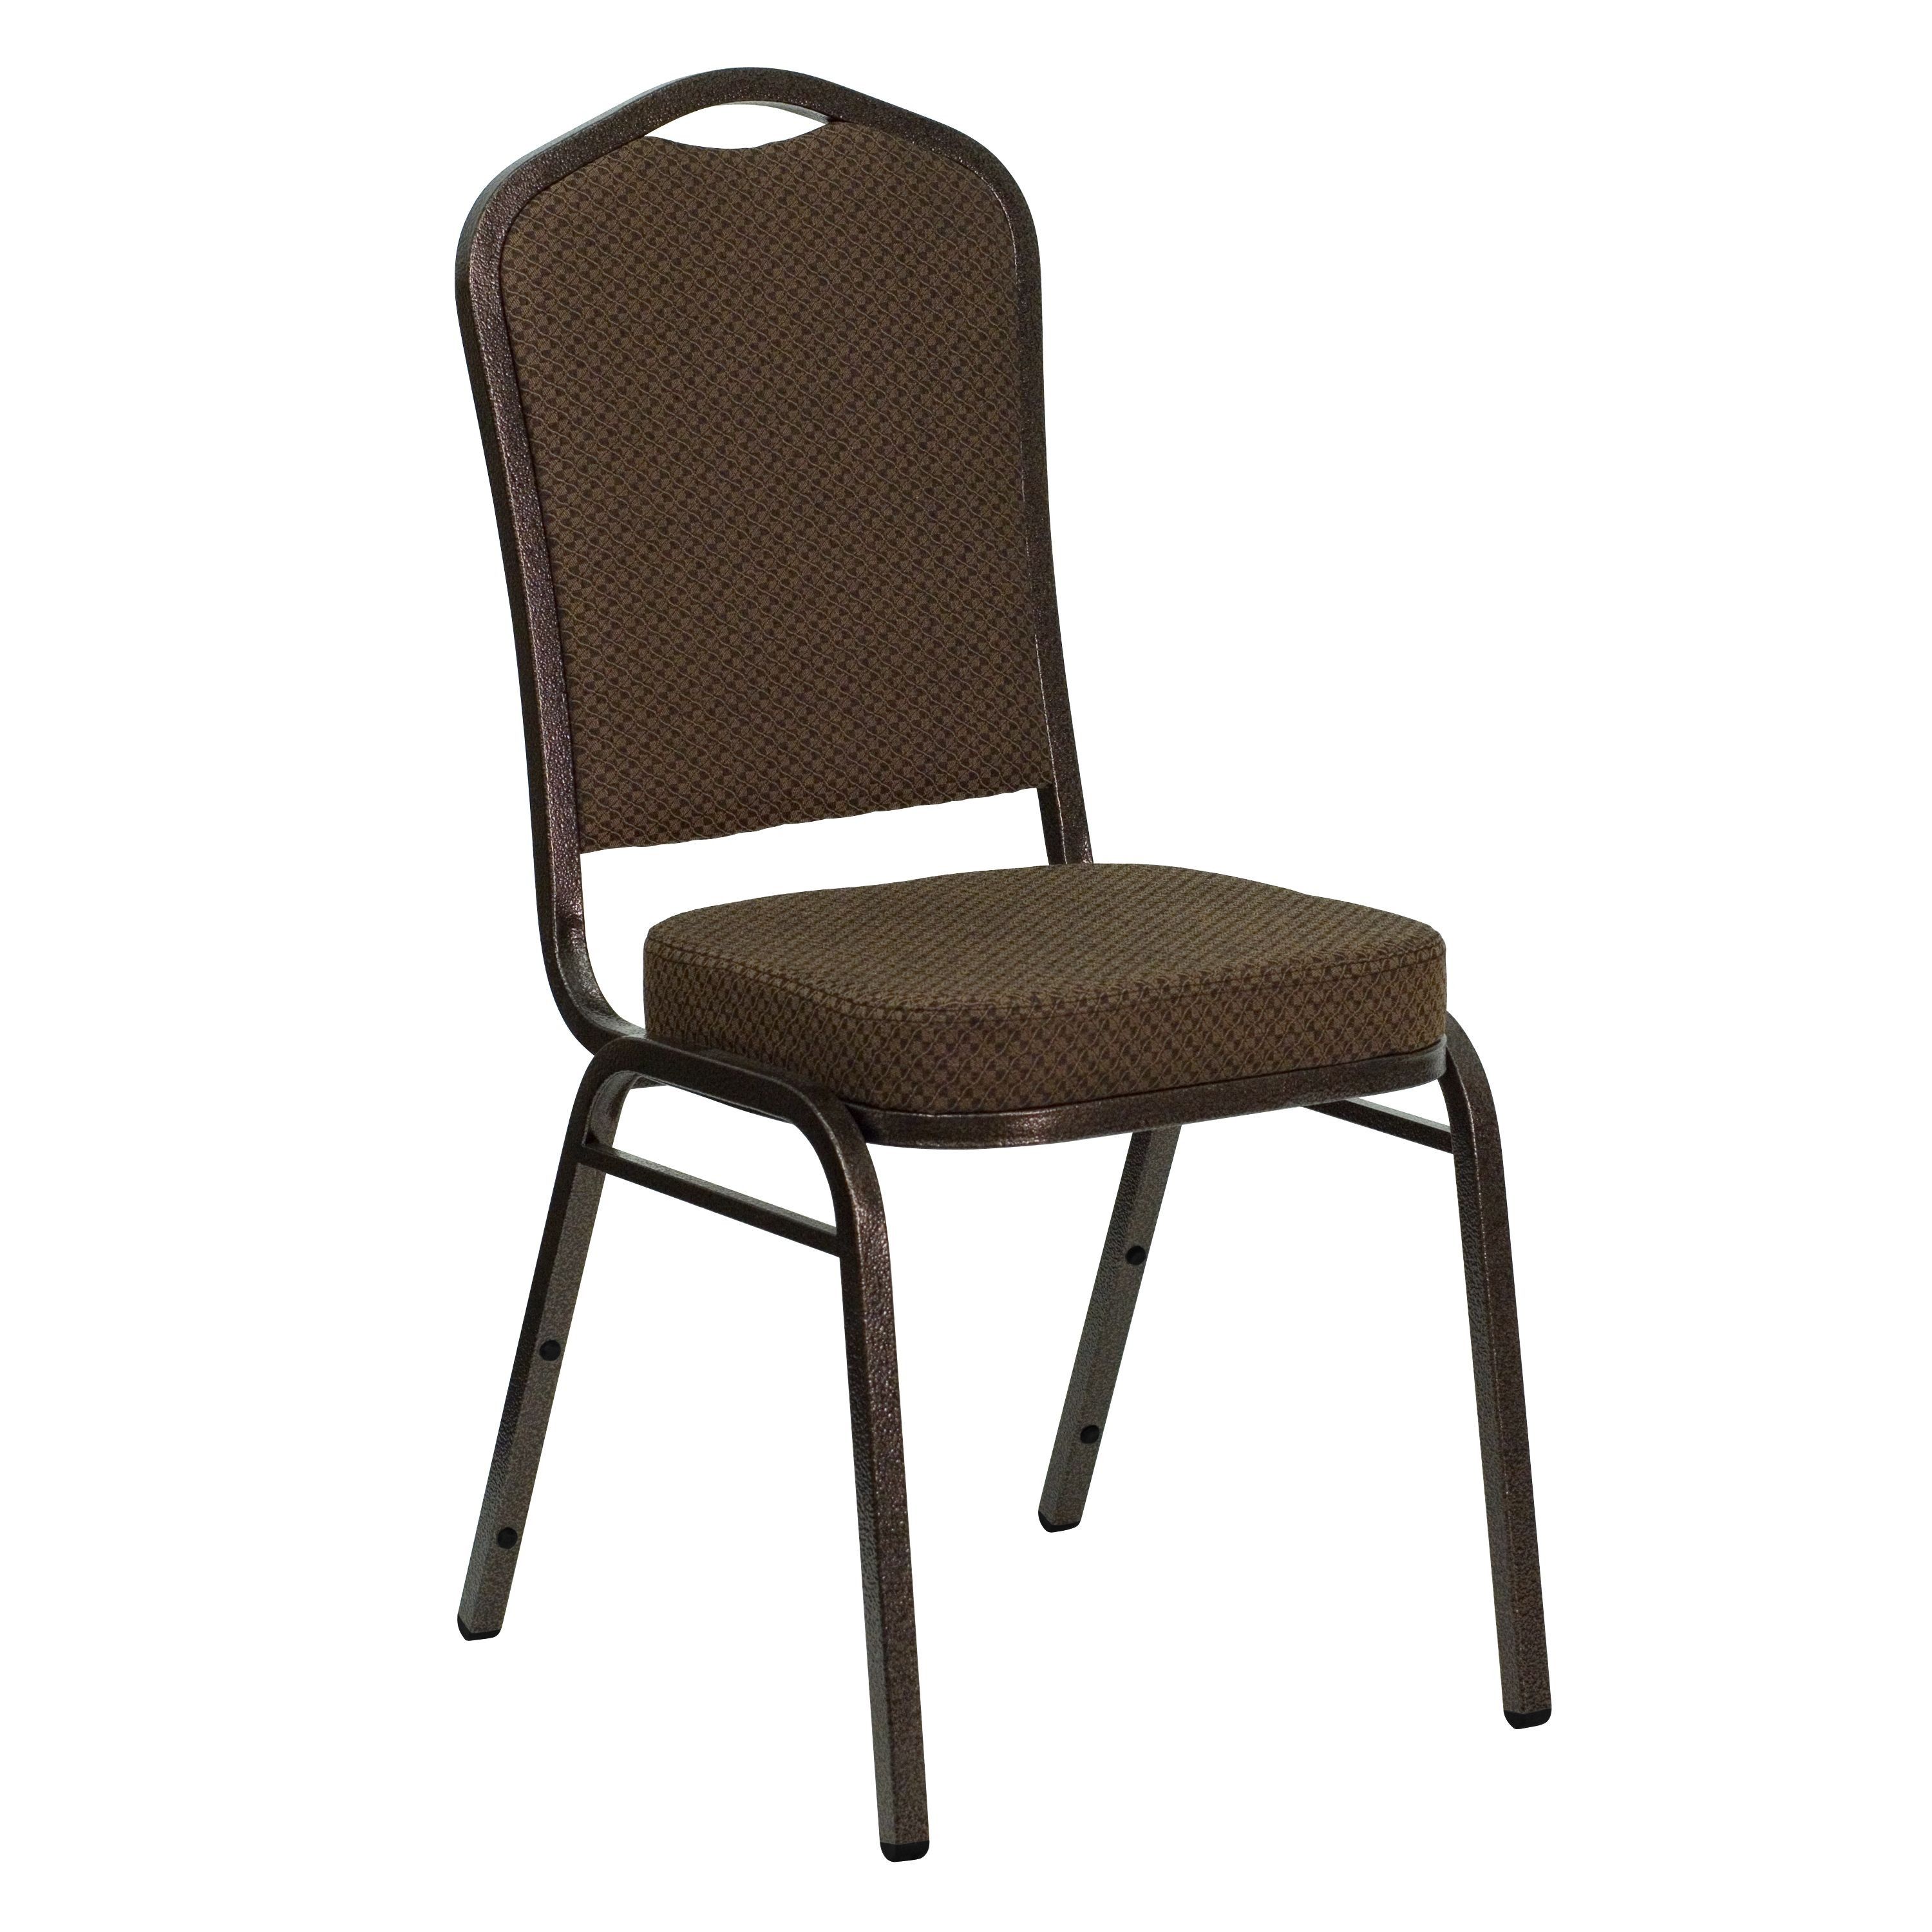 Flash Furniture FD-C01-COPPER-008-T-02-GG HERCULES Series Crown Back Stacking Banquet Chair with Brown Patterned Fabric/Copper Vein Frame